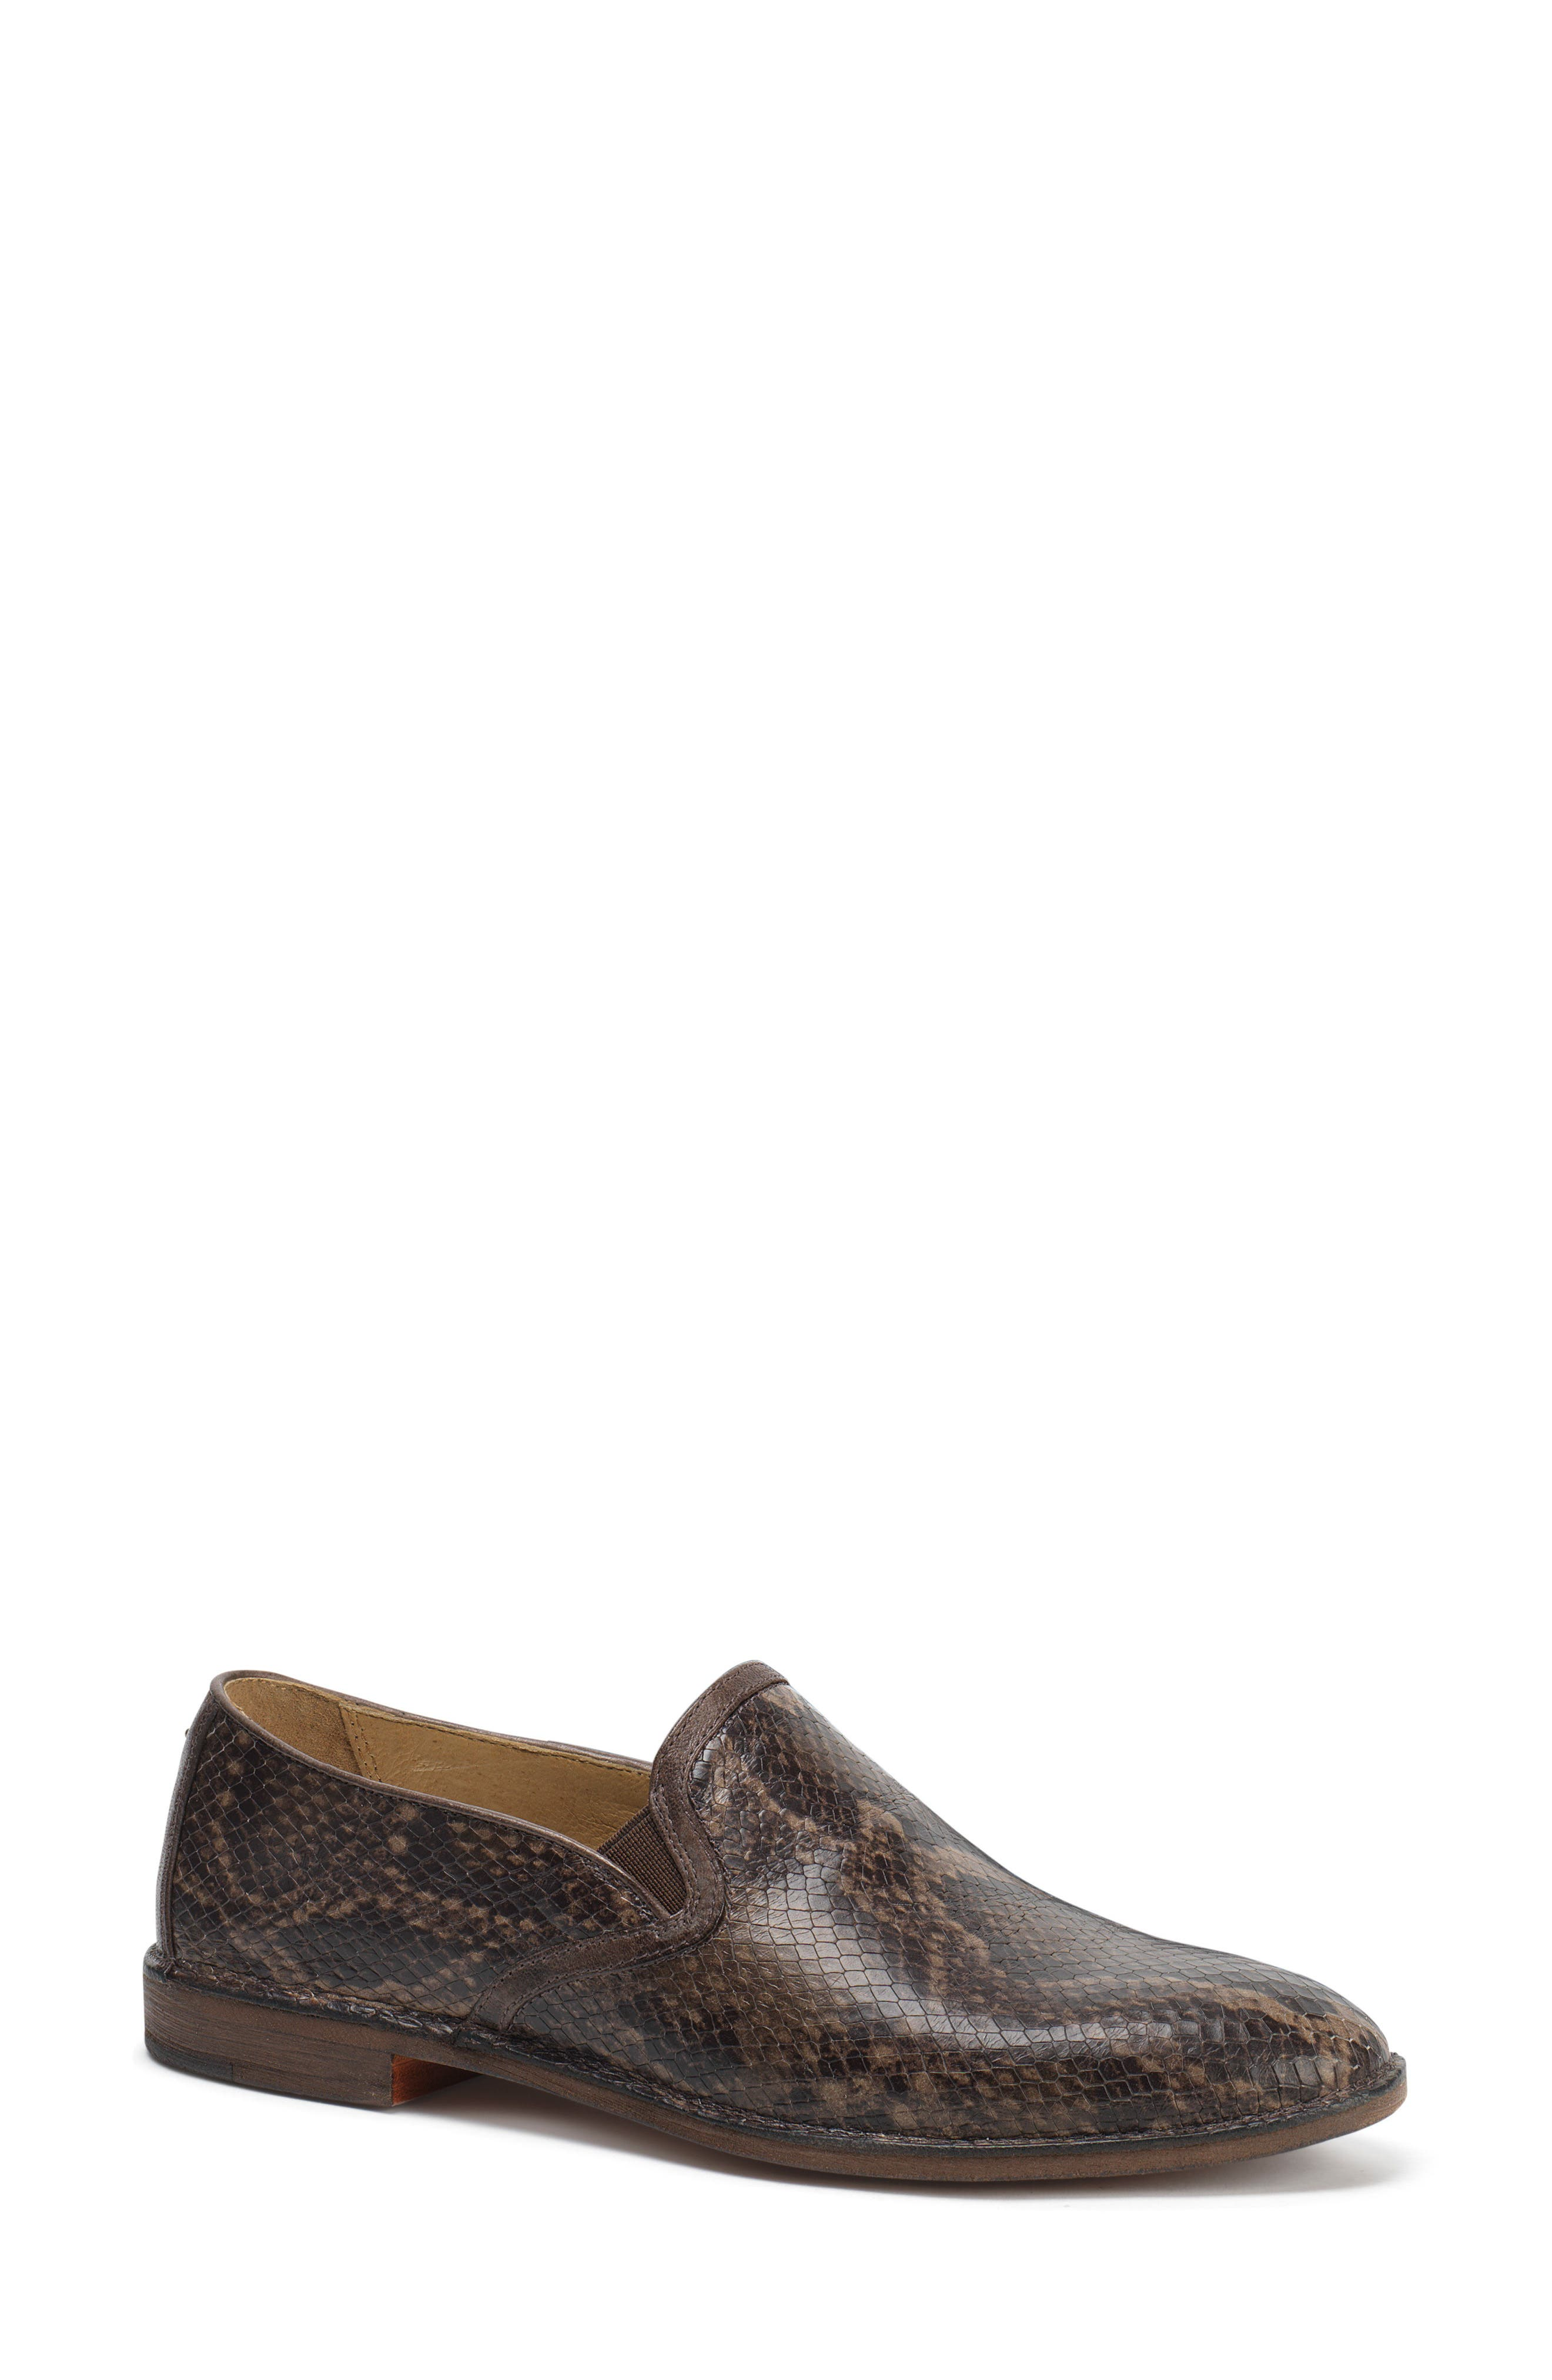 'Ali' Flat,                         Main,                         color, Brown Print Leather